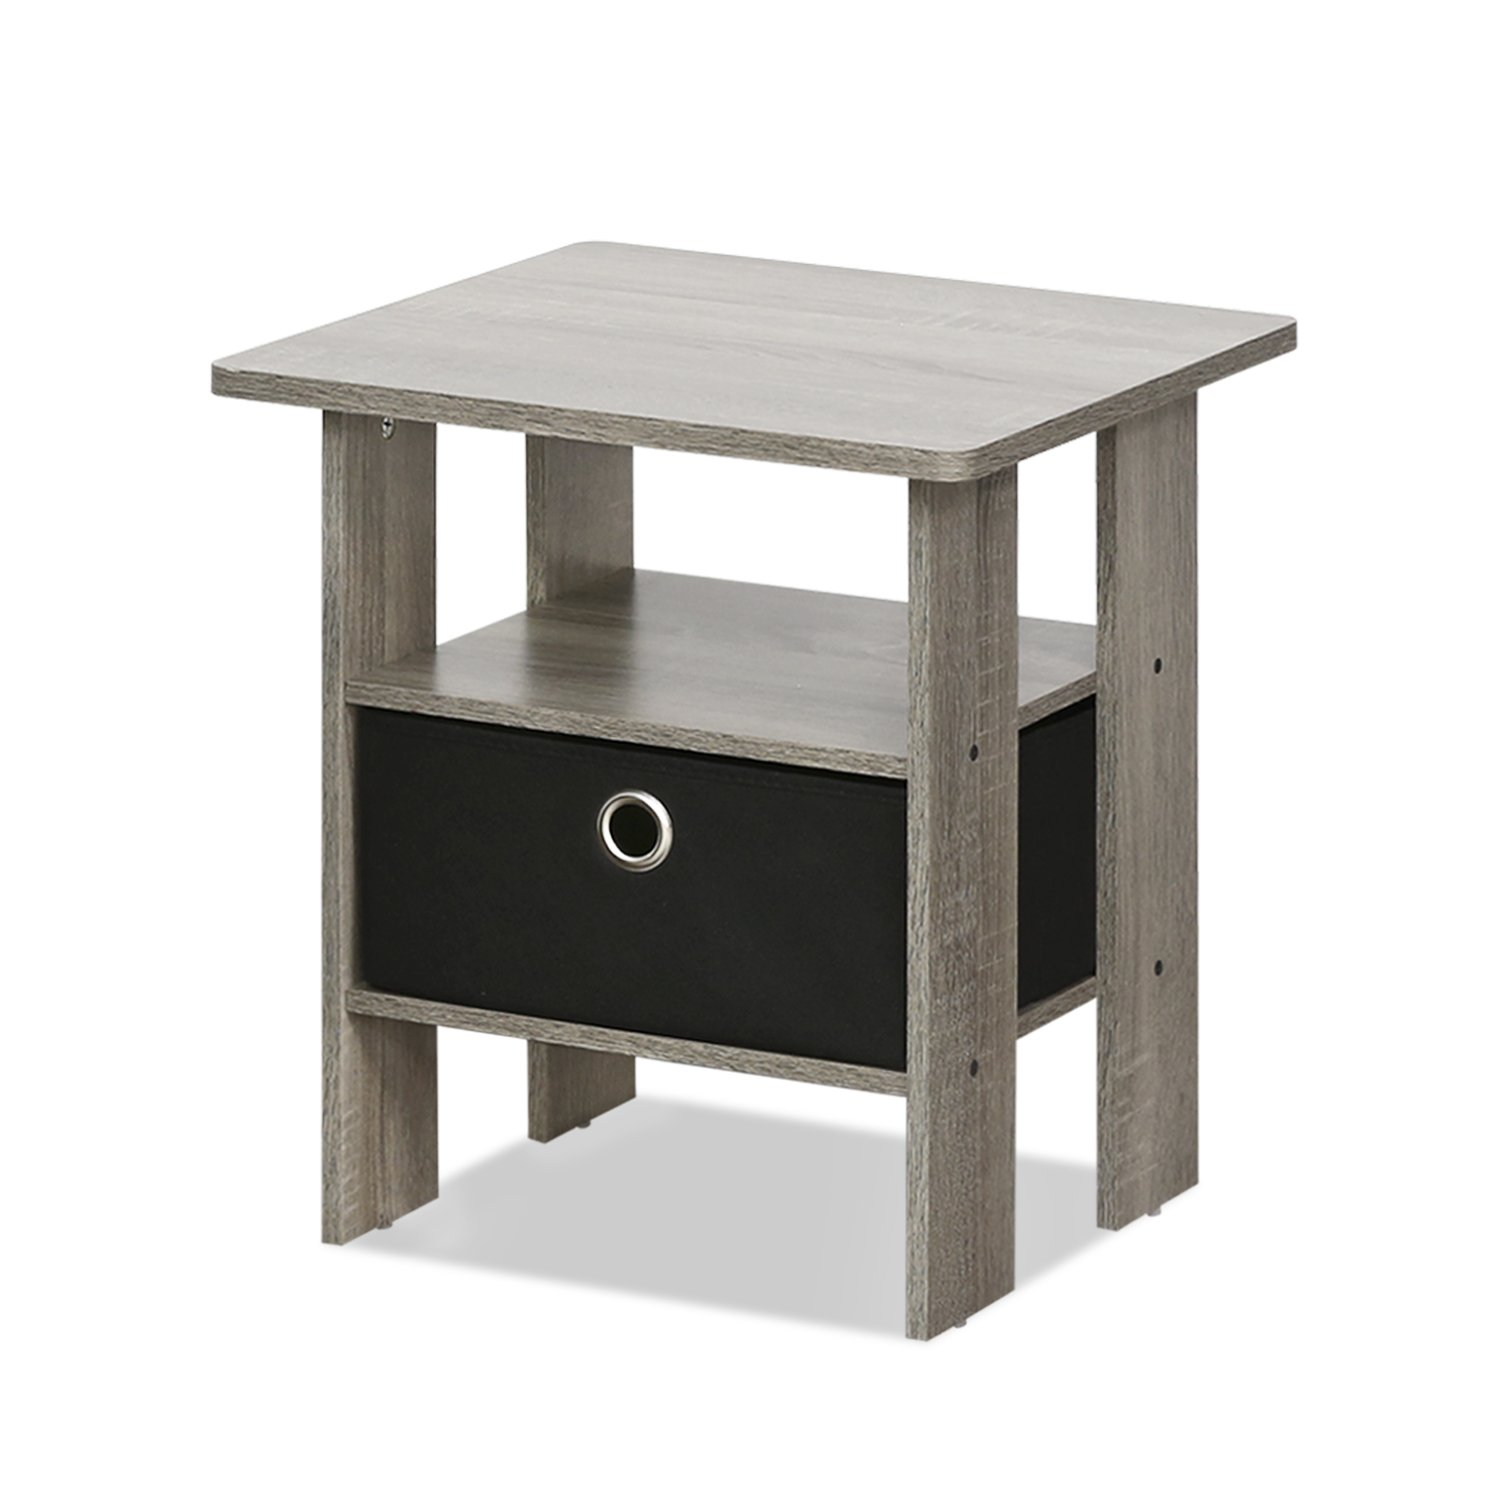 furinno night stand end table french oak dark brown accent grey black kitchen dining console tablecloths and runners acrylic small garden furniture circular nest tables cotton